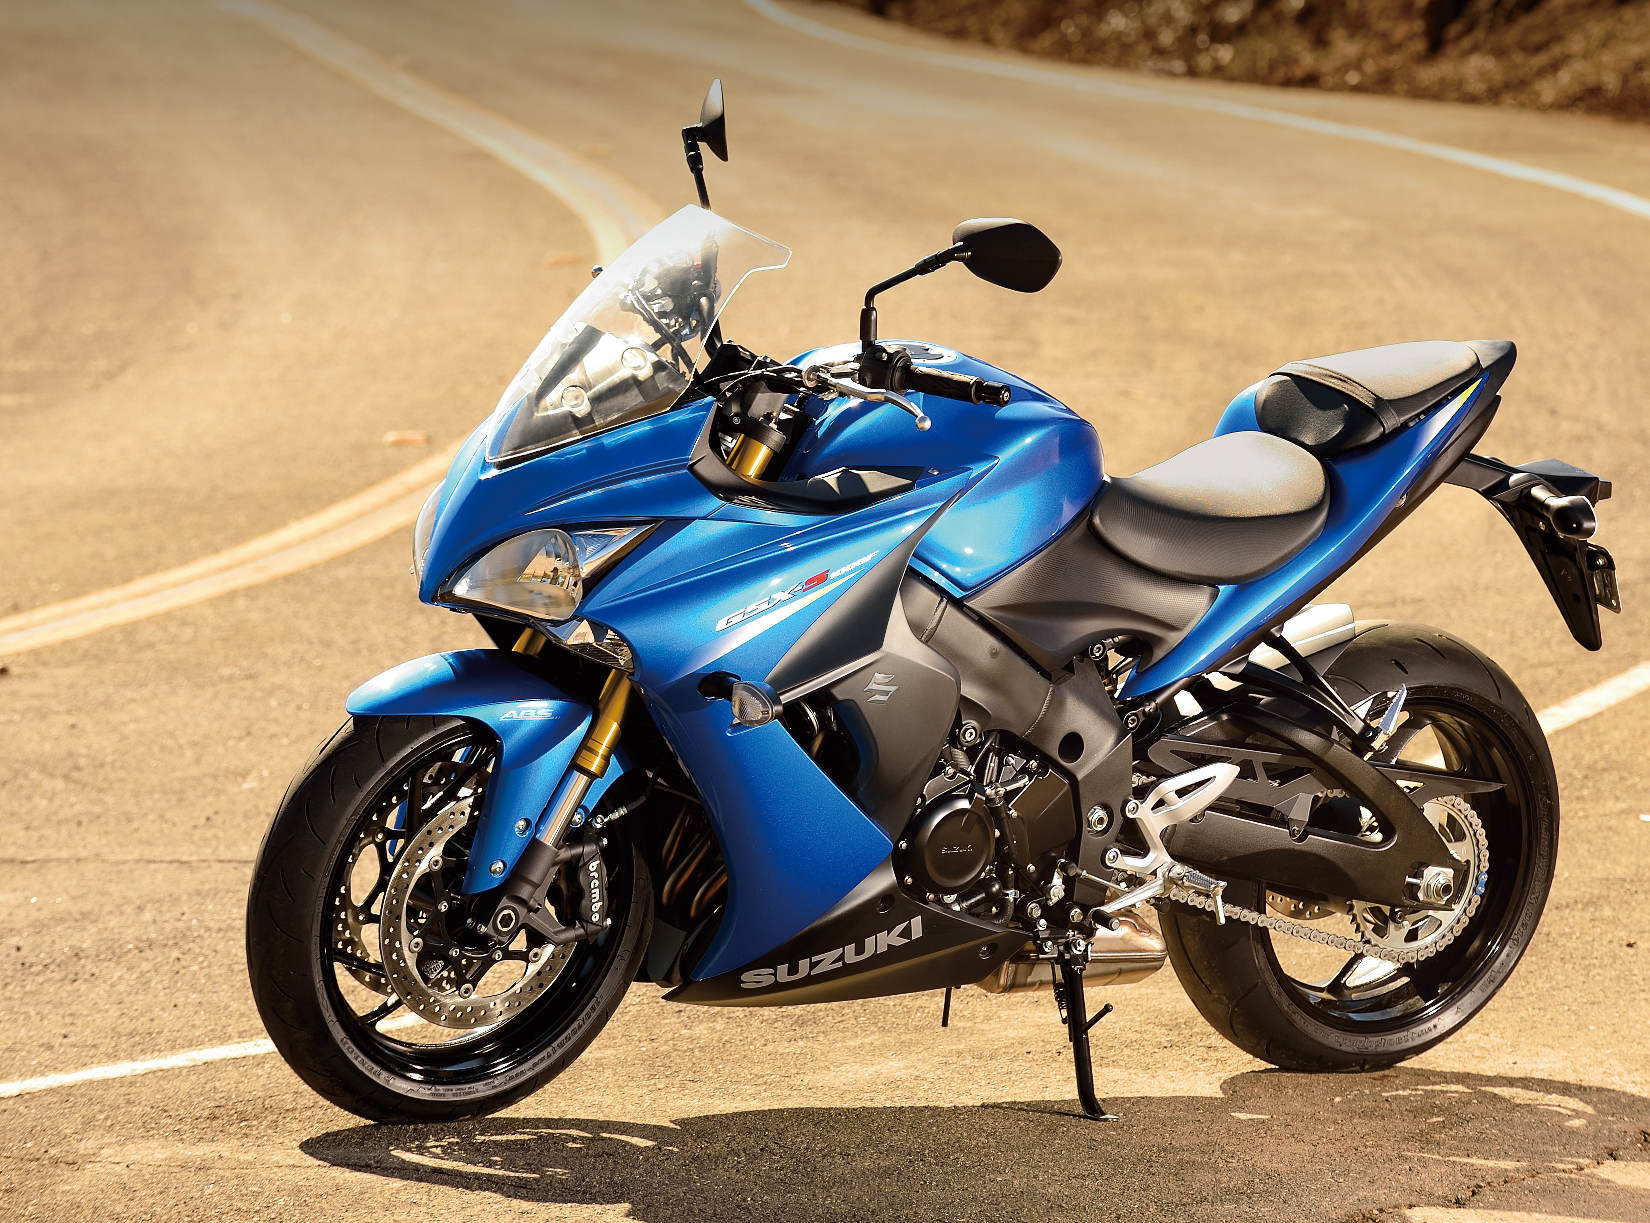 suzuki announces superbike engined gsx s1000 naked and gsx s1000f sport tourer motorcycledaily. Black Bedroom Furniture Sets. Home Design Ideas